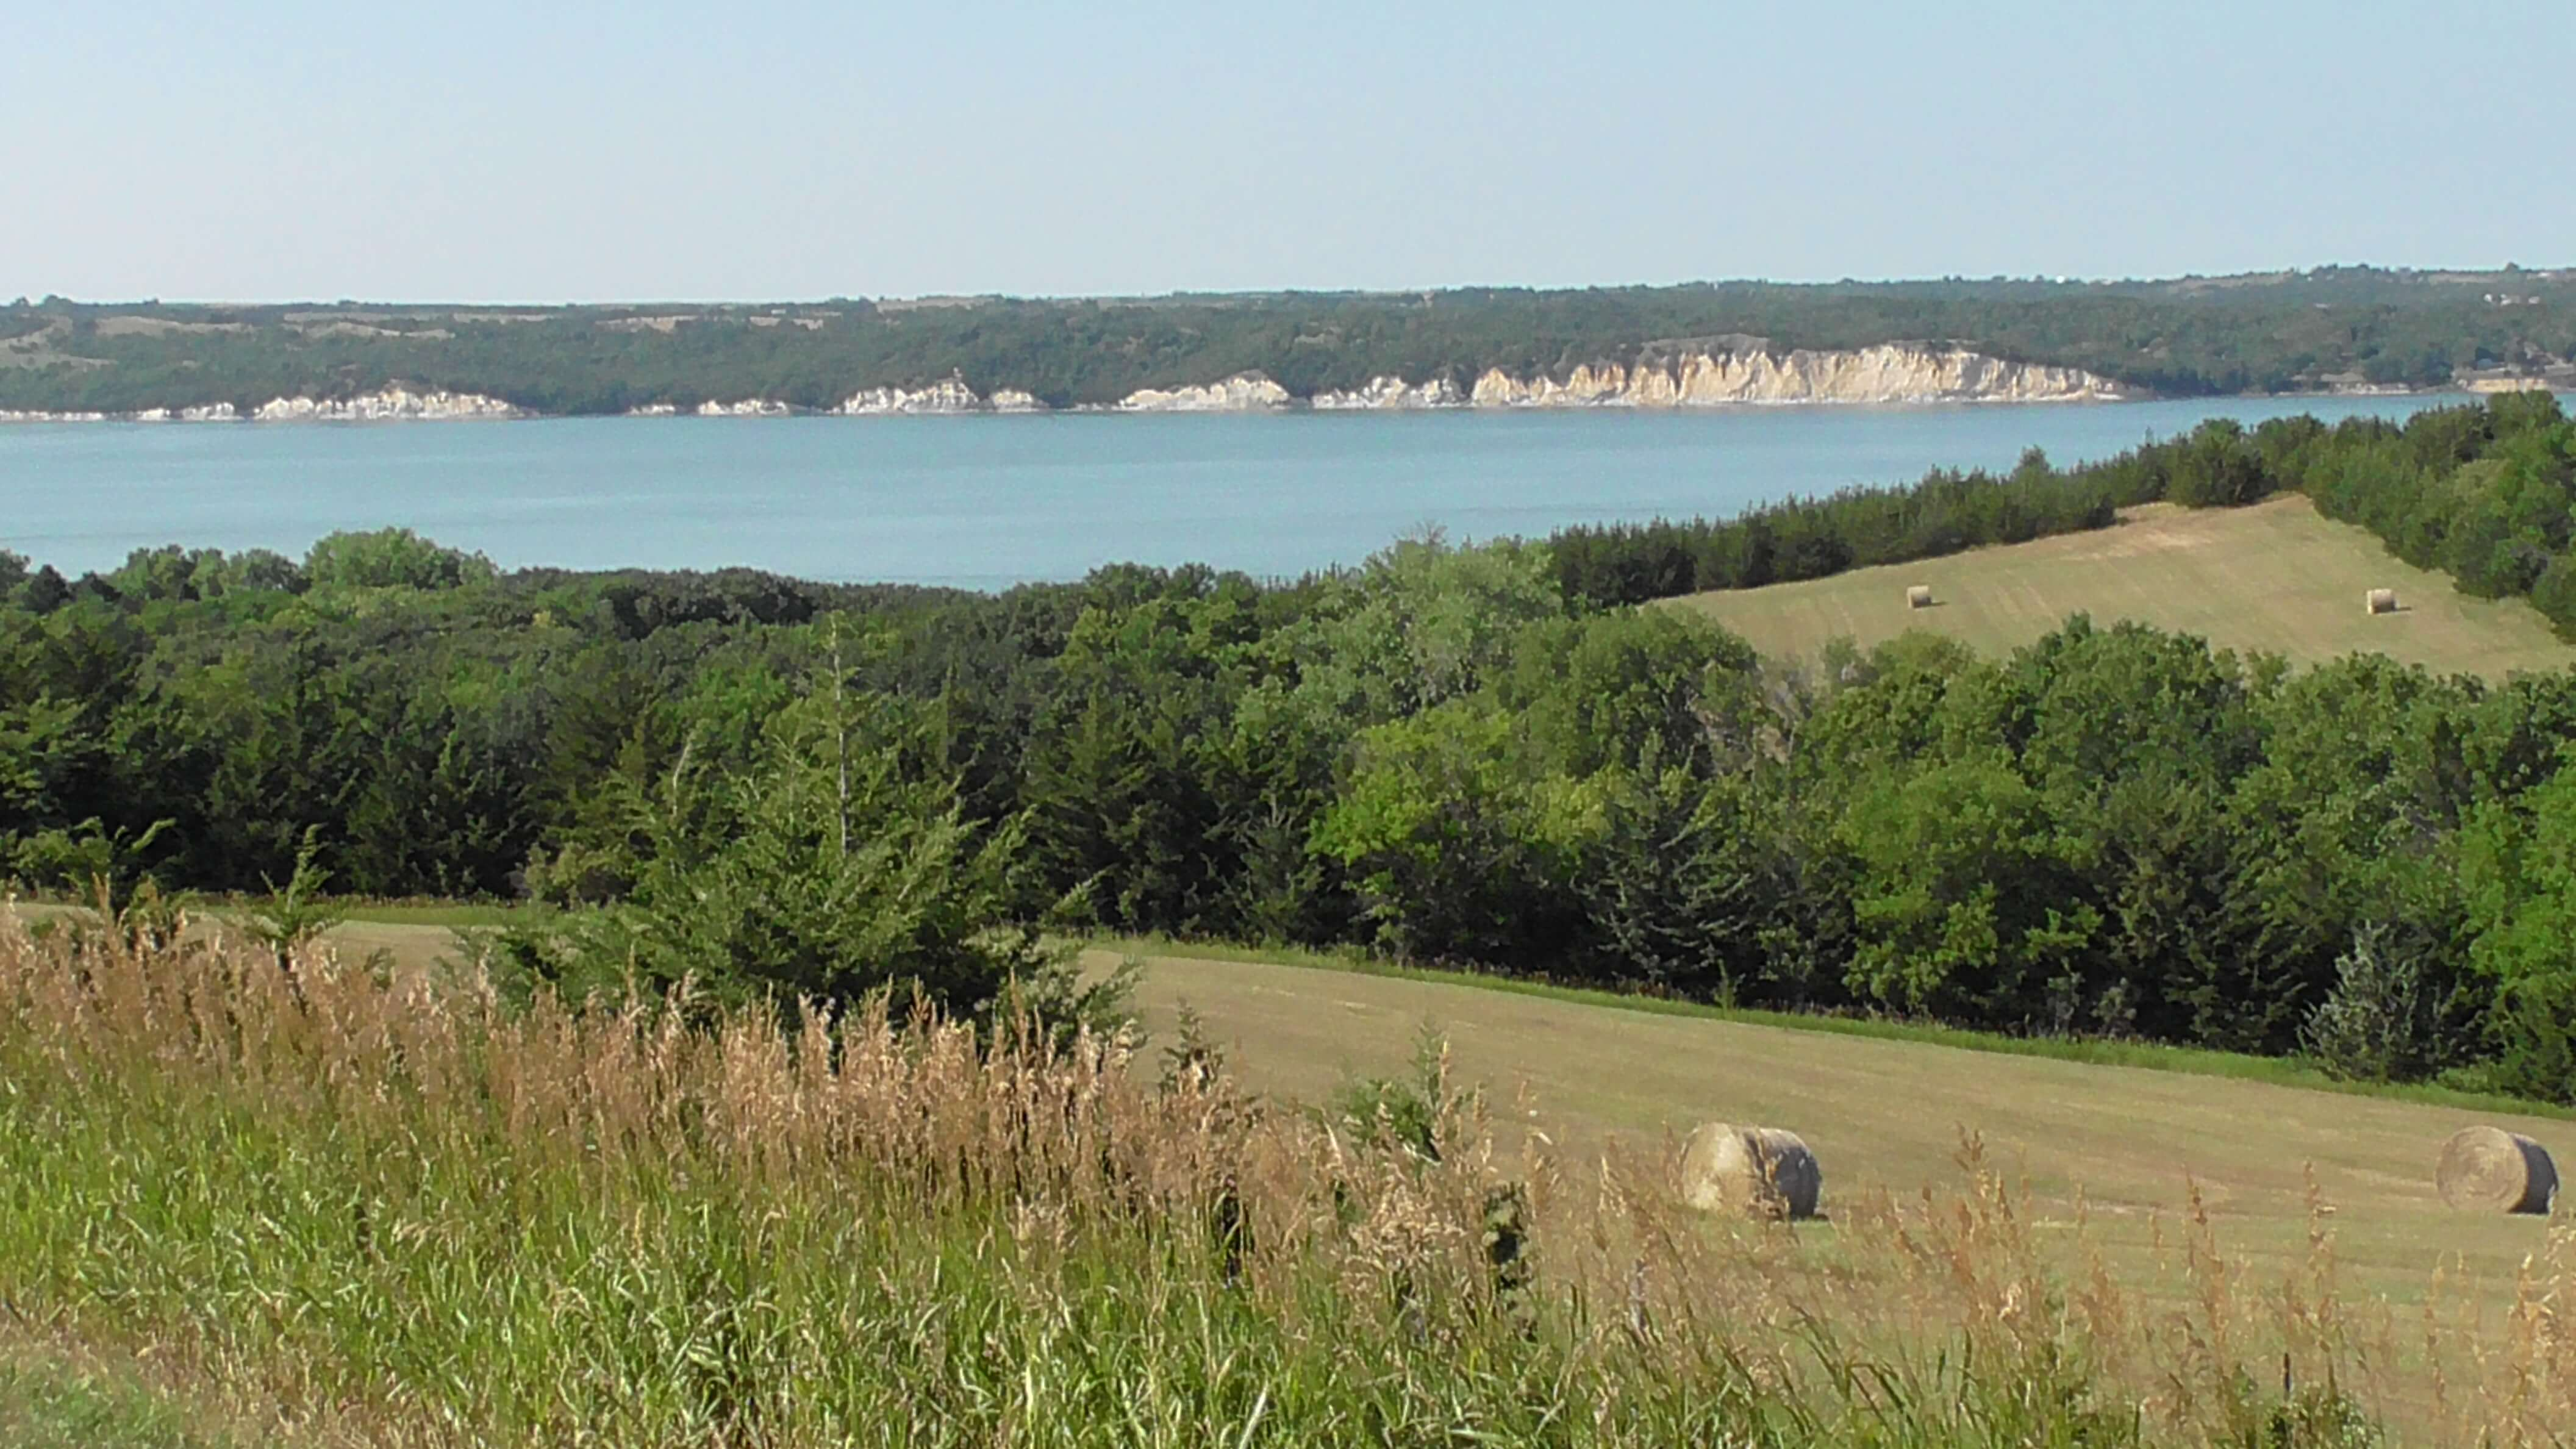 View of the Missouri River close to the Lewis and Clark State Recreation Area